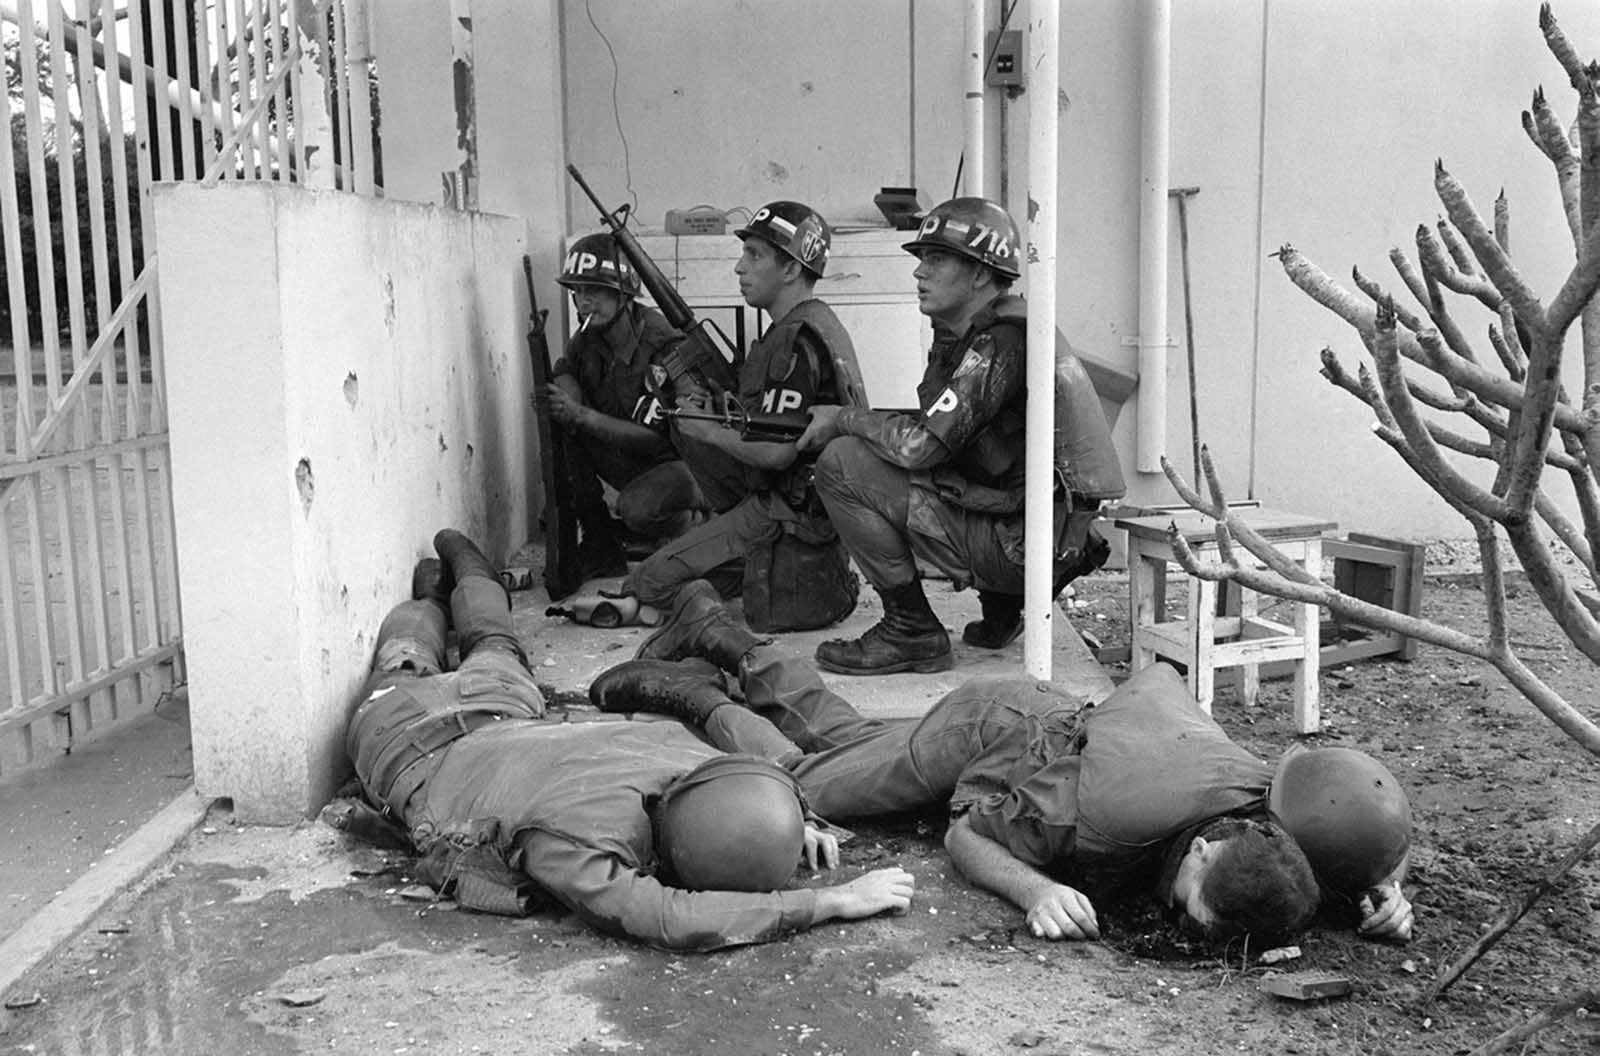 With dead U.S. soldiers in the foreground, U.S. military police take cover behind a wall at the entrance to the U.S. Consulate in Saigon on the first day of the Tet Offensive, January 31, 1968. Viet Cong guerrillas had invaded the grounds of the U.S. embassy compound in the earliest hours of the coordinated Communist offensive.